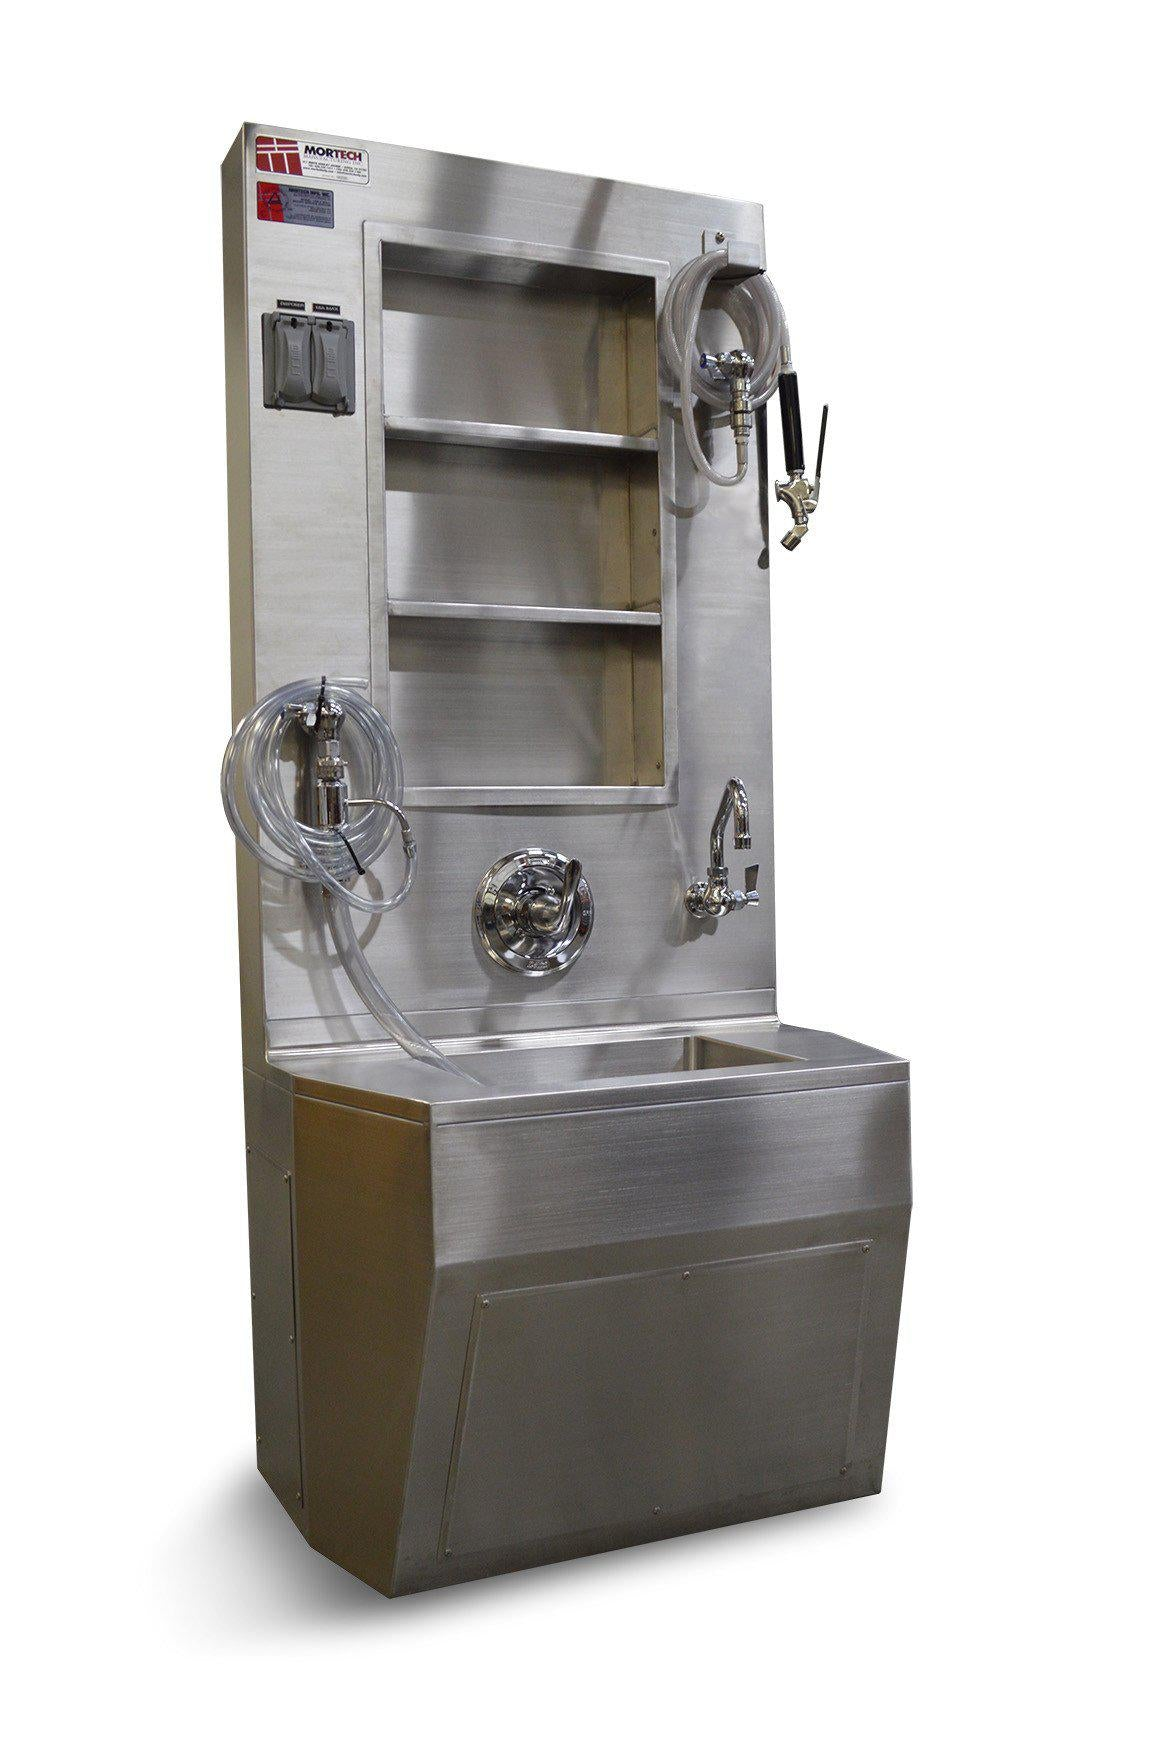 Wall Mount Service Station-Sink Station-Mortech Manufacturing Company Inc. Quality Stainless Steel Autopsy, Morgue, Funeral Home, Necropsy, Veterinary / Anatomy, Dissection Equipment and Accessories